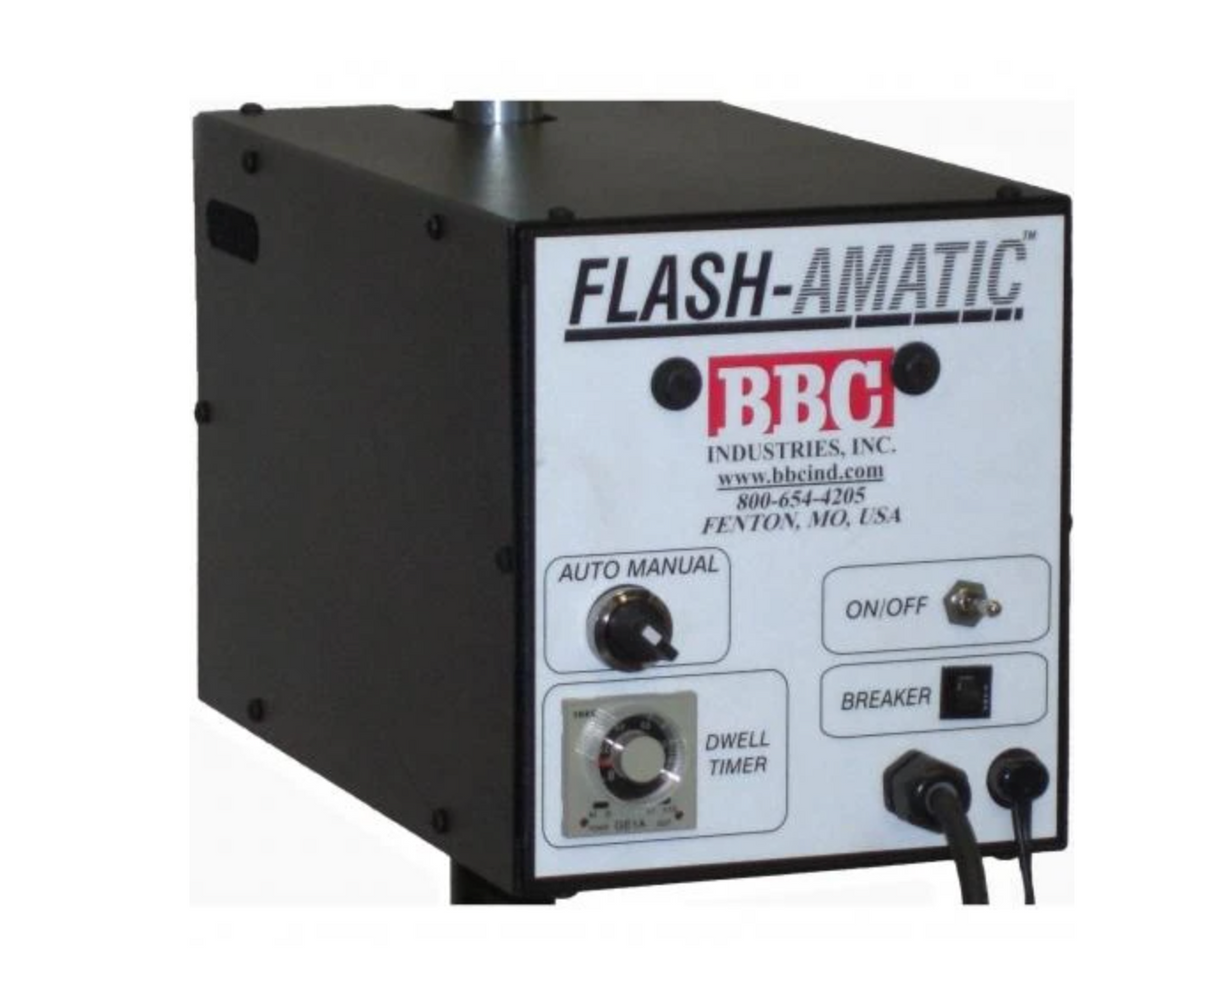 BBC FLASH-AMATIC AUTO ROTATING FLASH DRYER WITH FOOT PEDAL